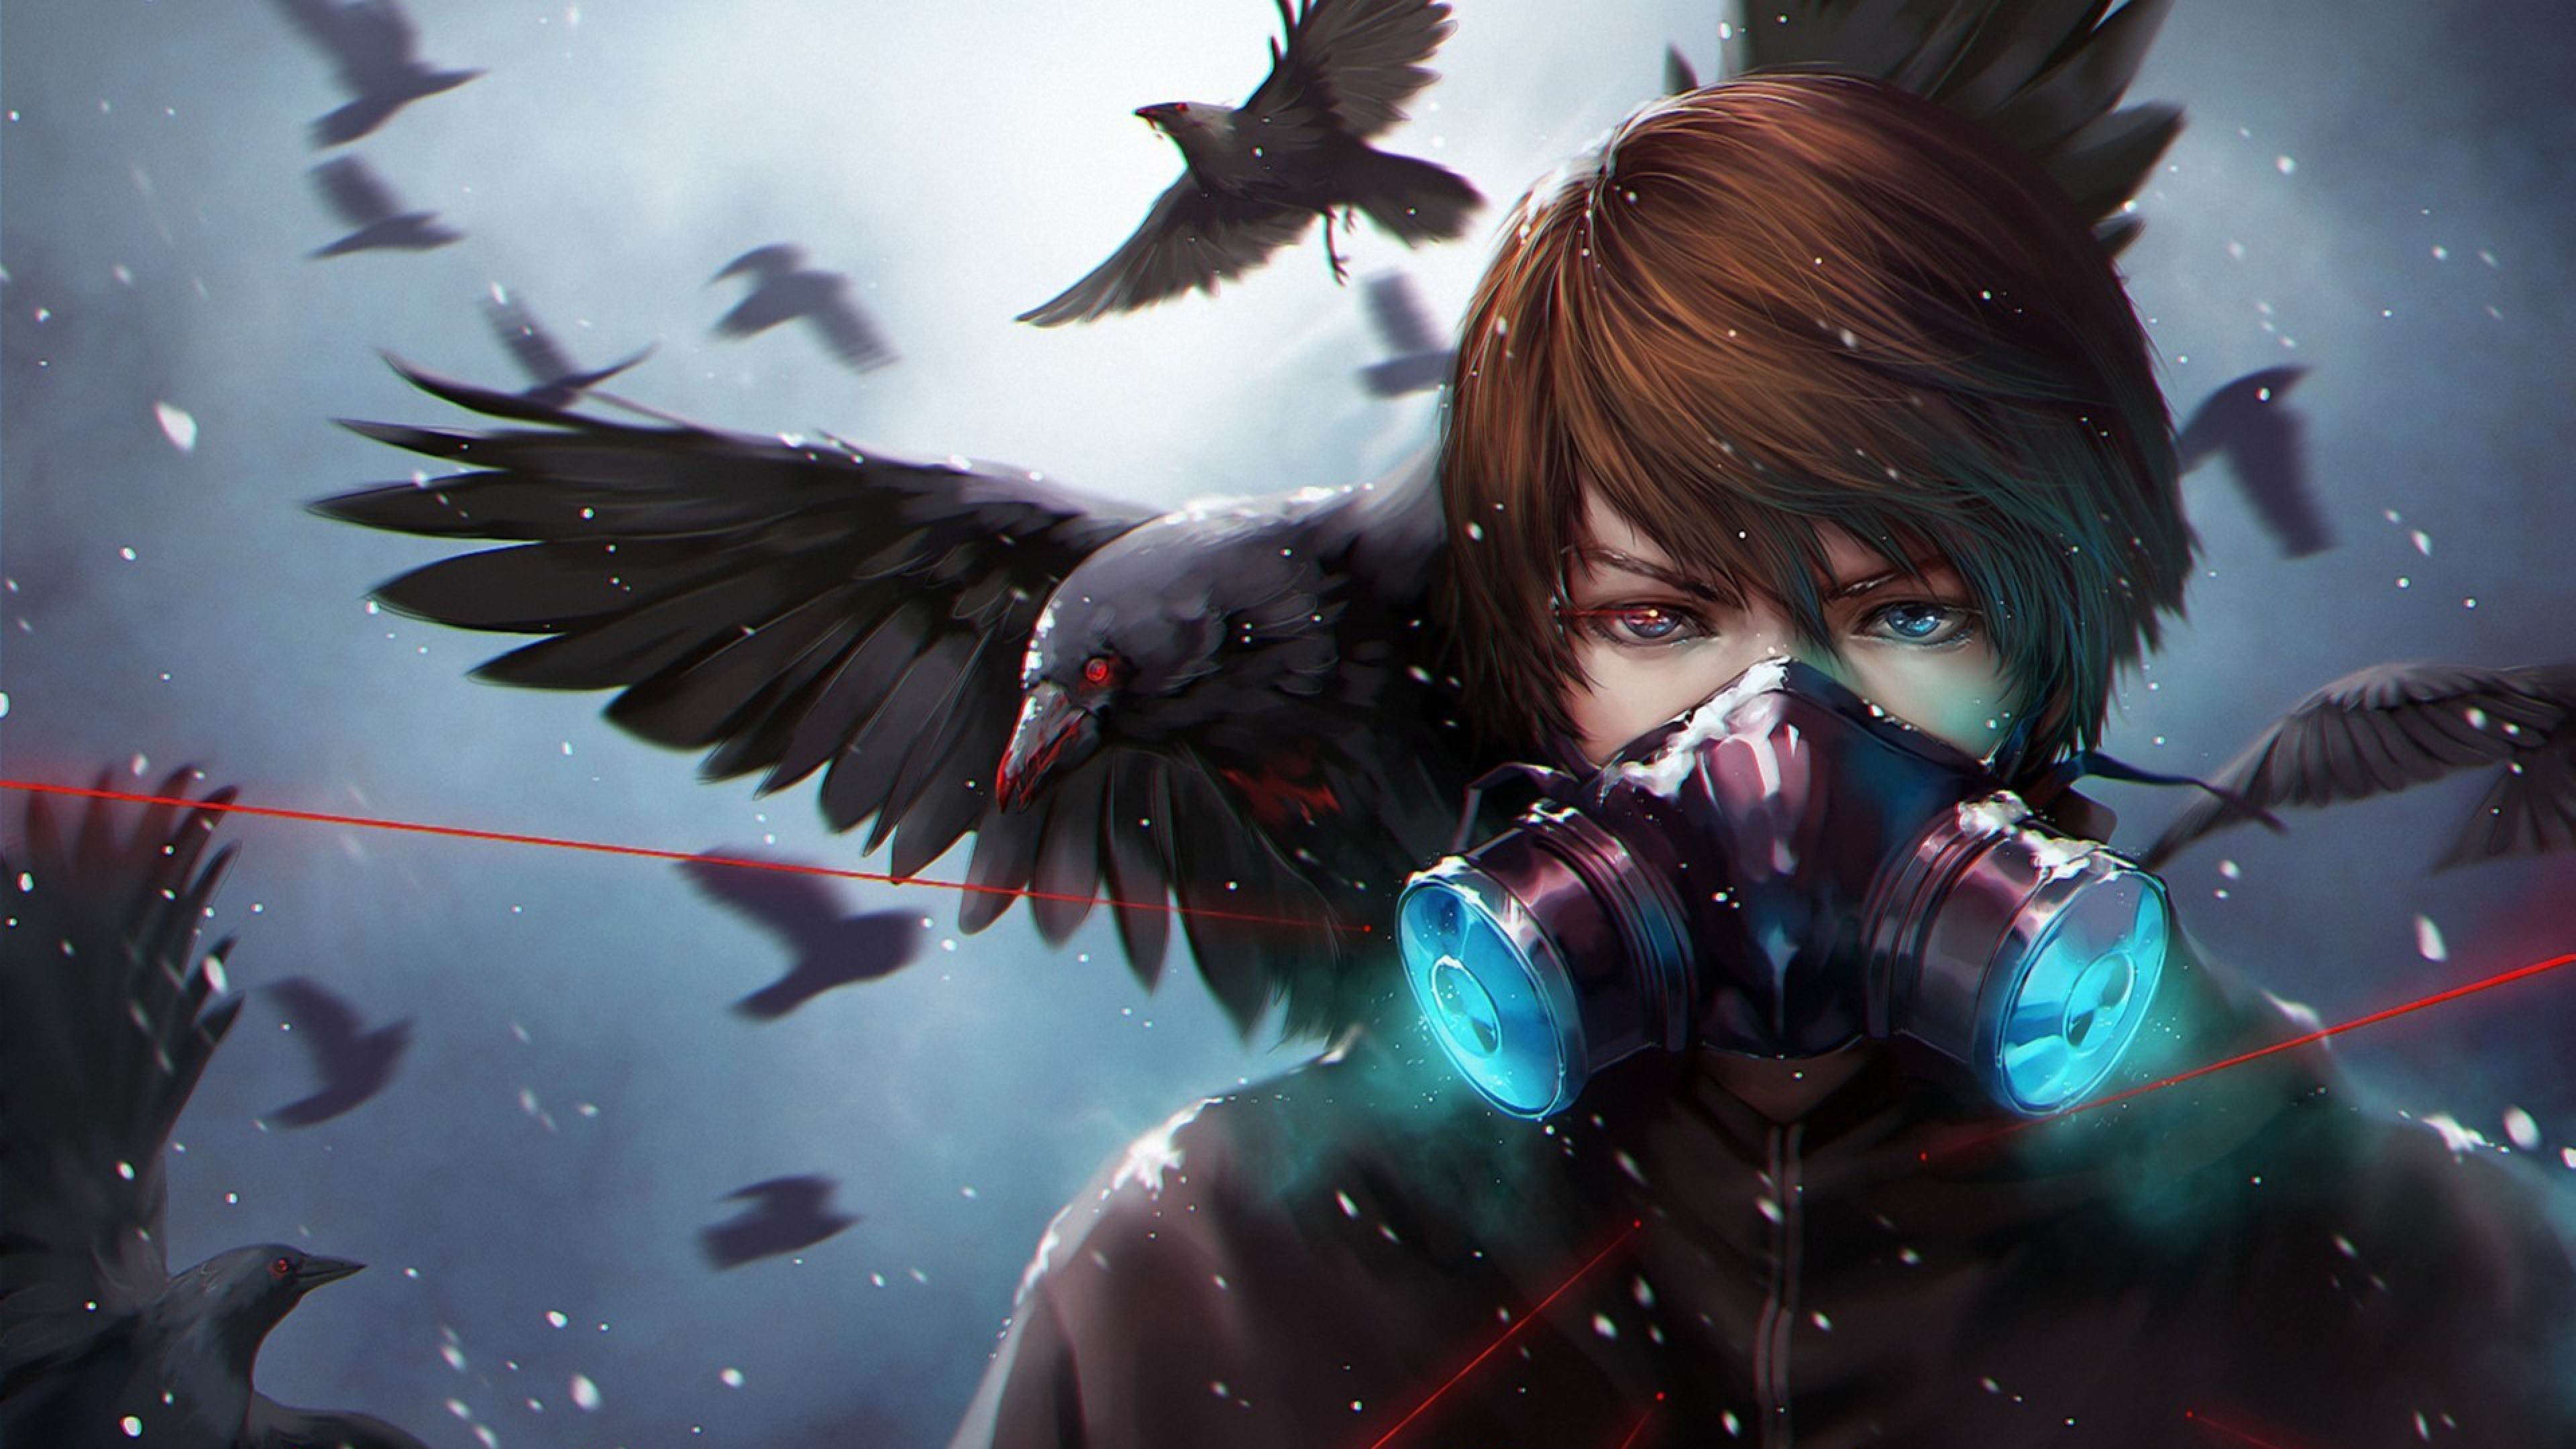 nightcore wallpaper hd ·①